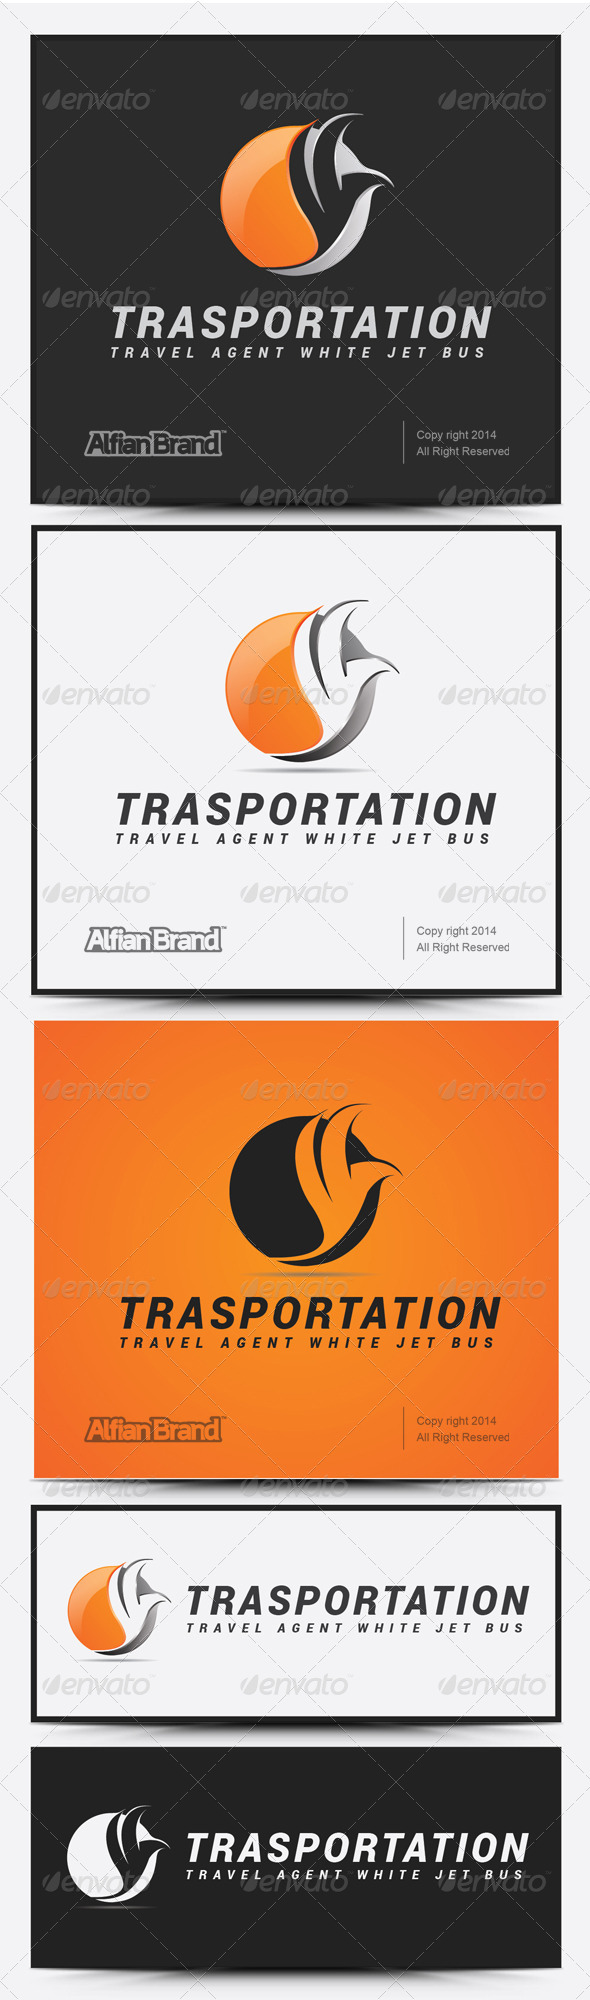 GraphicRiver Transportation logo 7999945